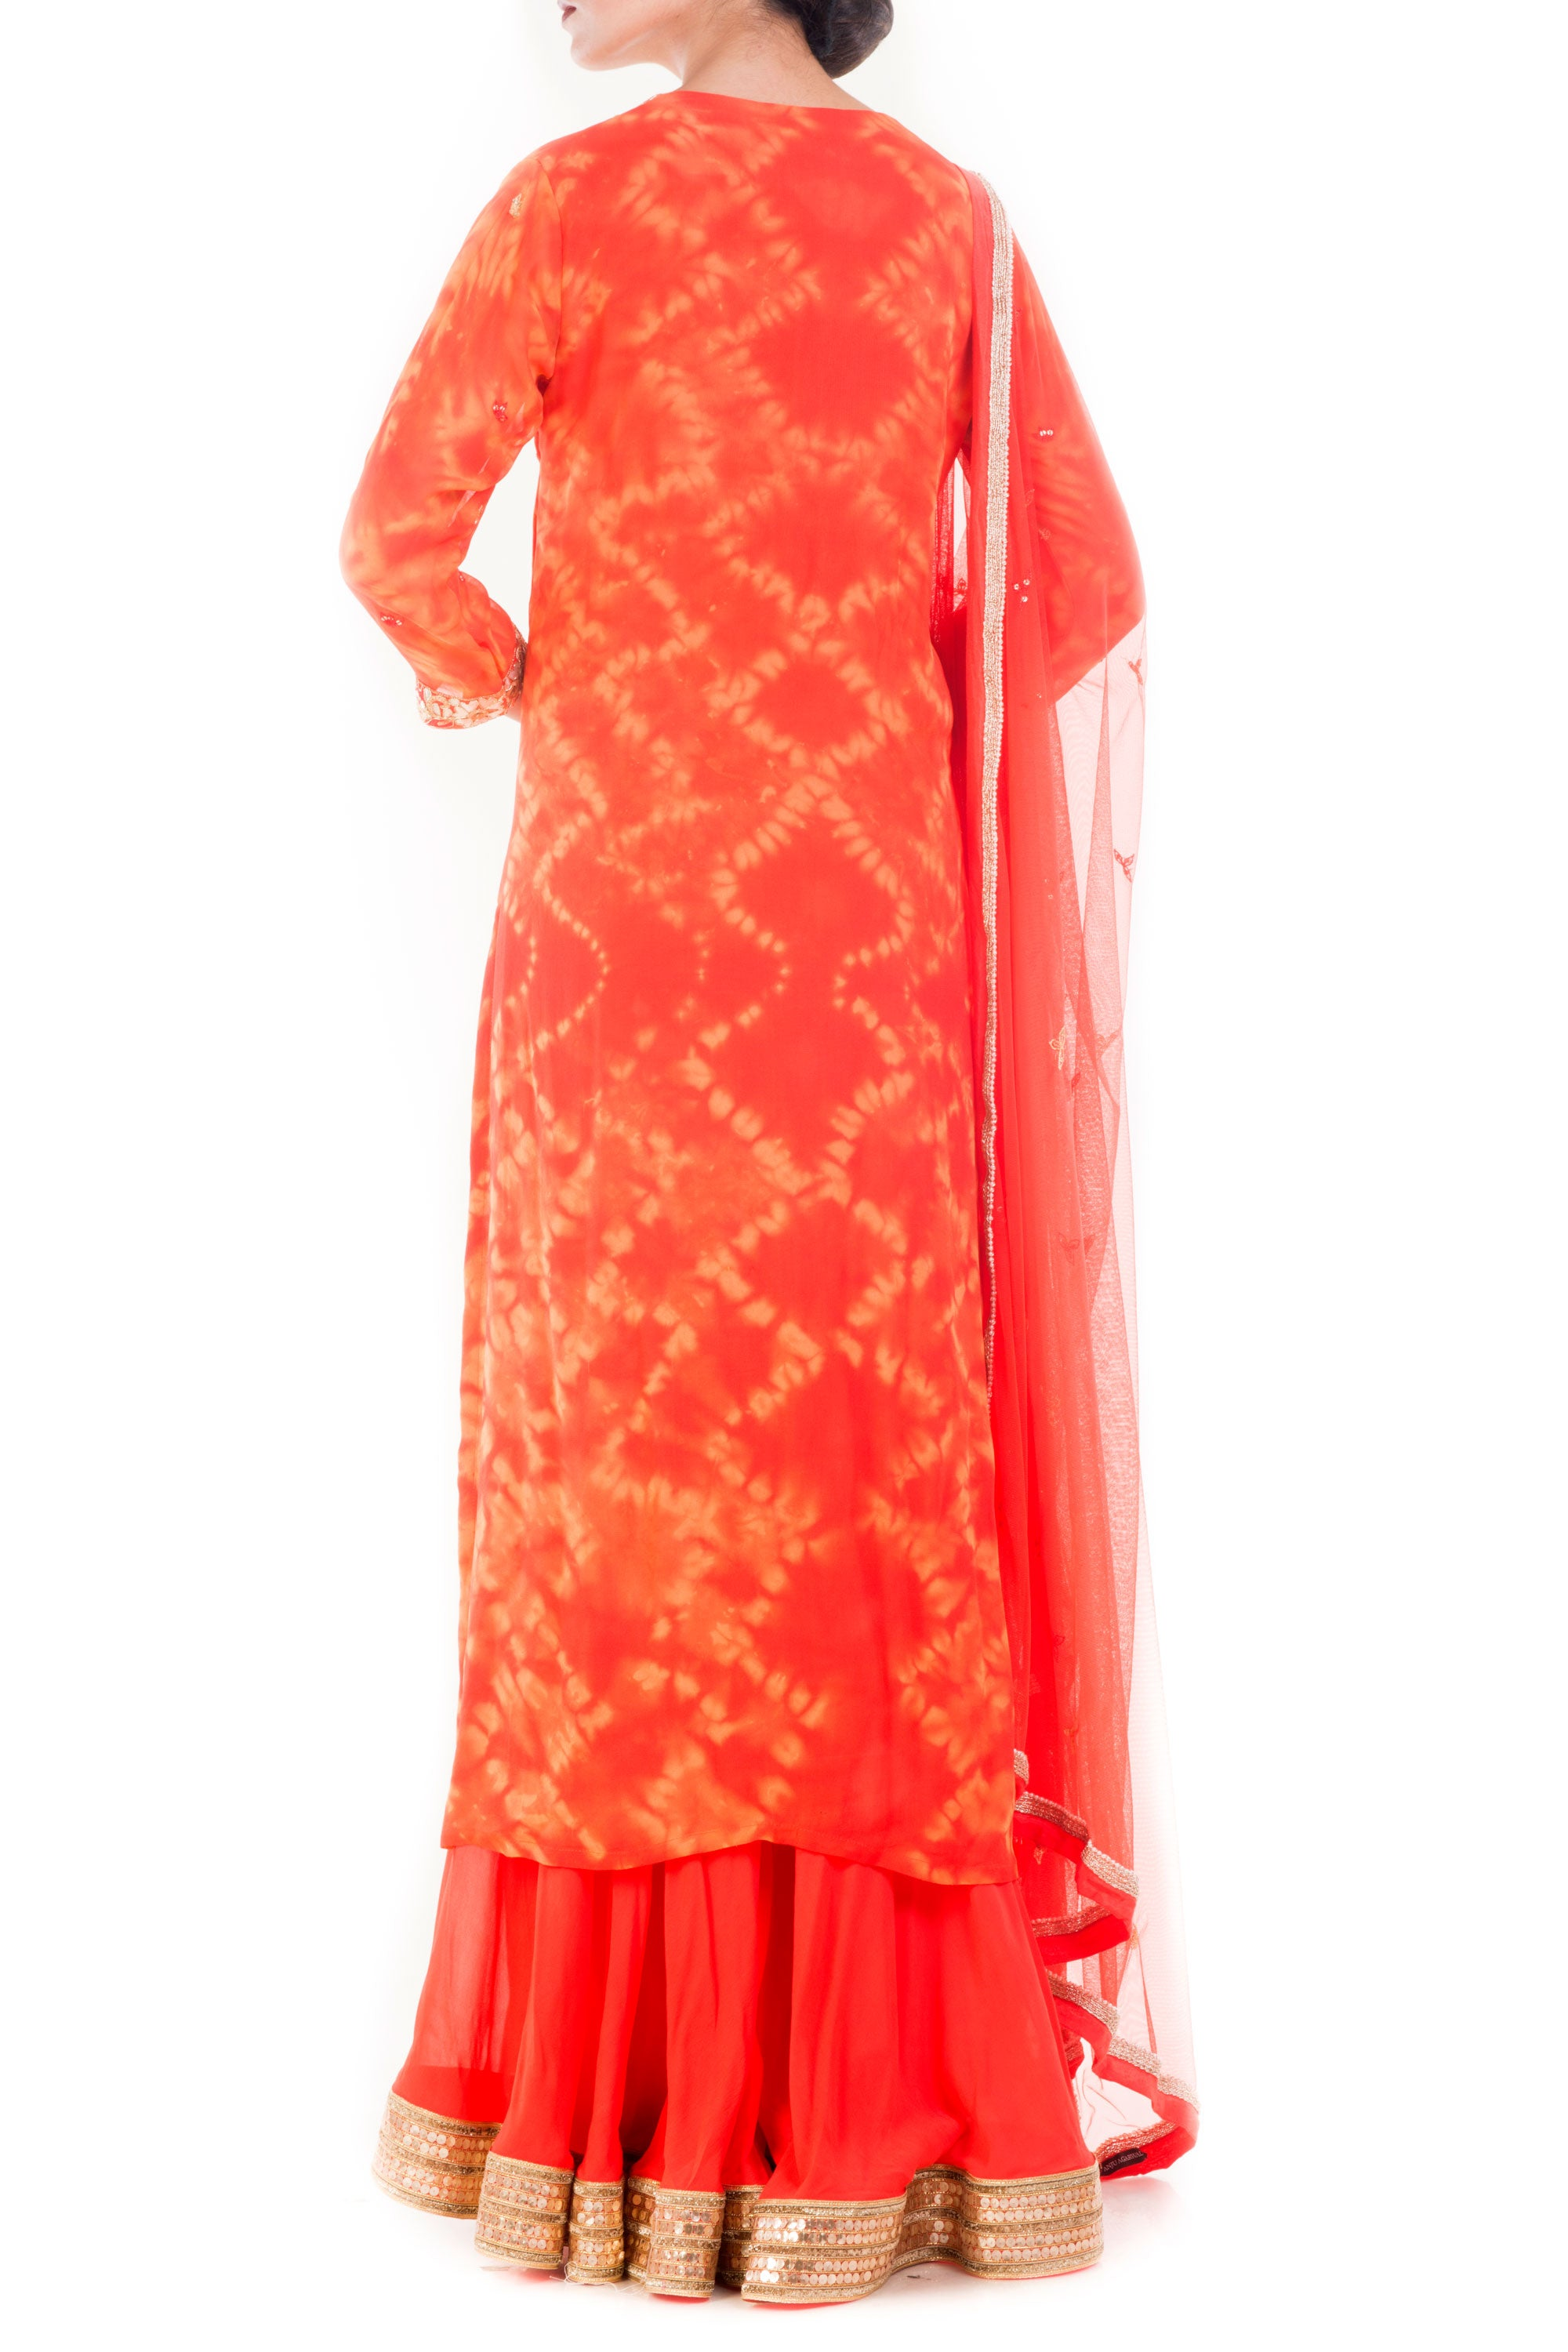 Tangerine Gold Embellished Sharara Set Back